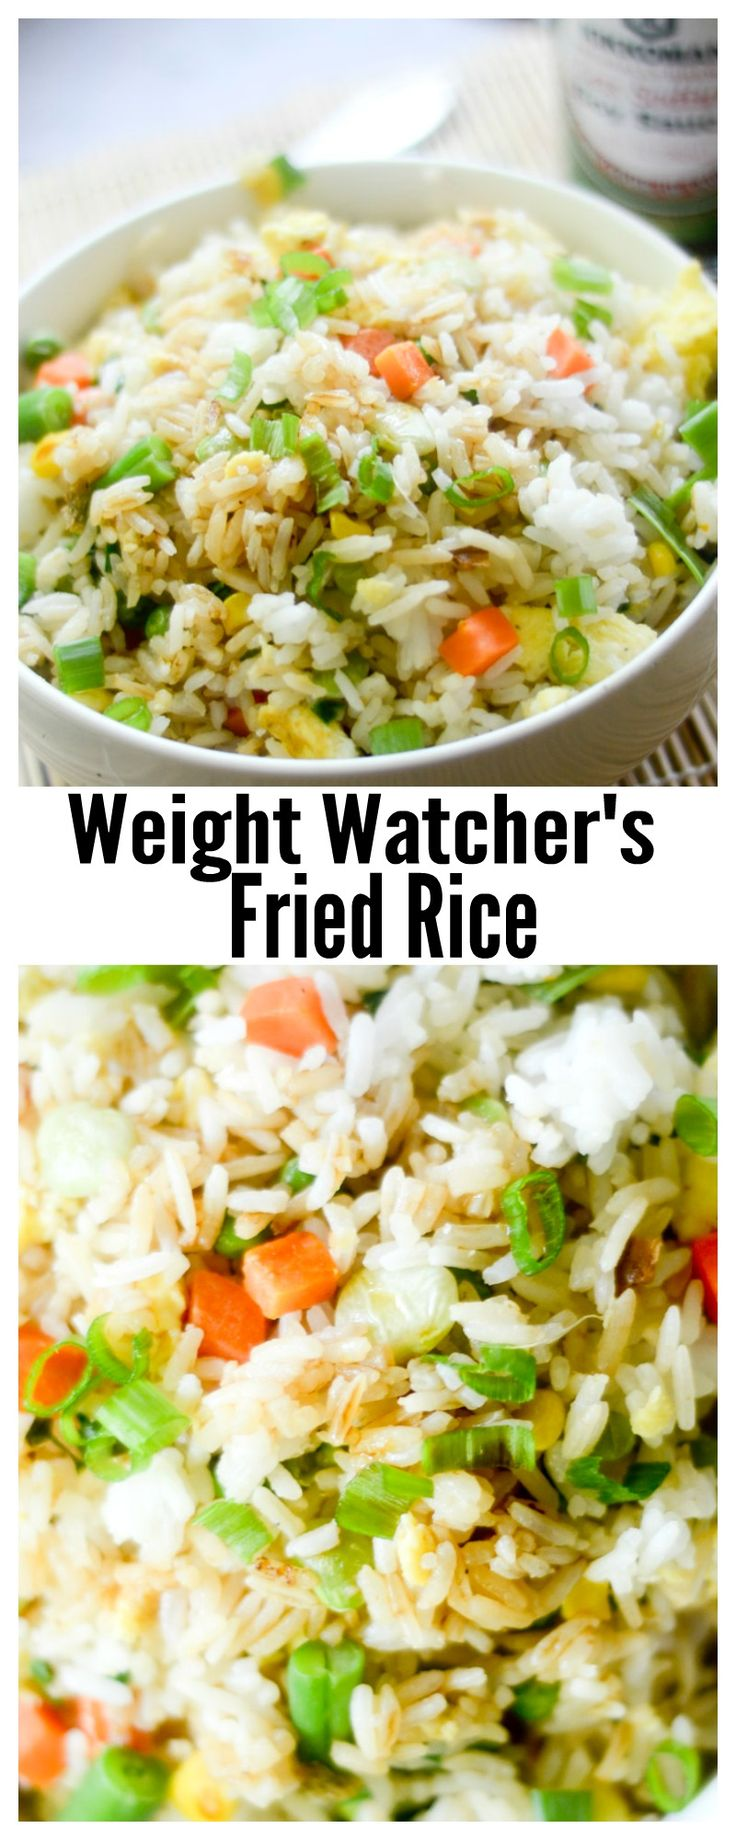 Weight Watcher's Fried Rice - Recipe Diaries